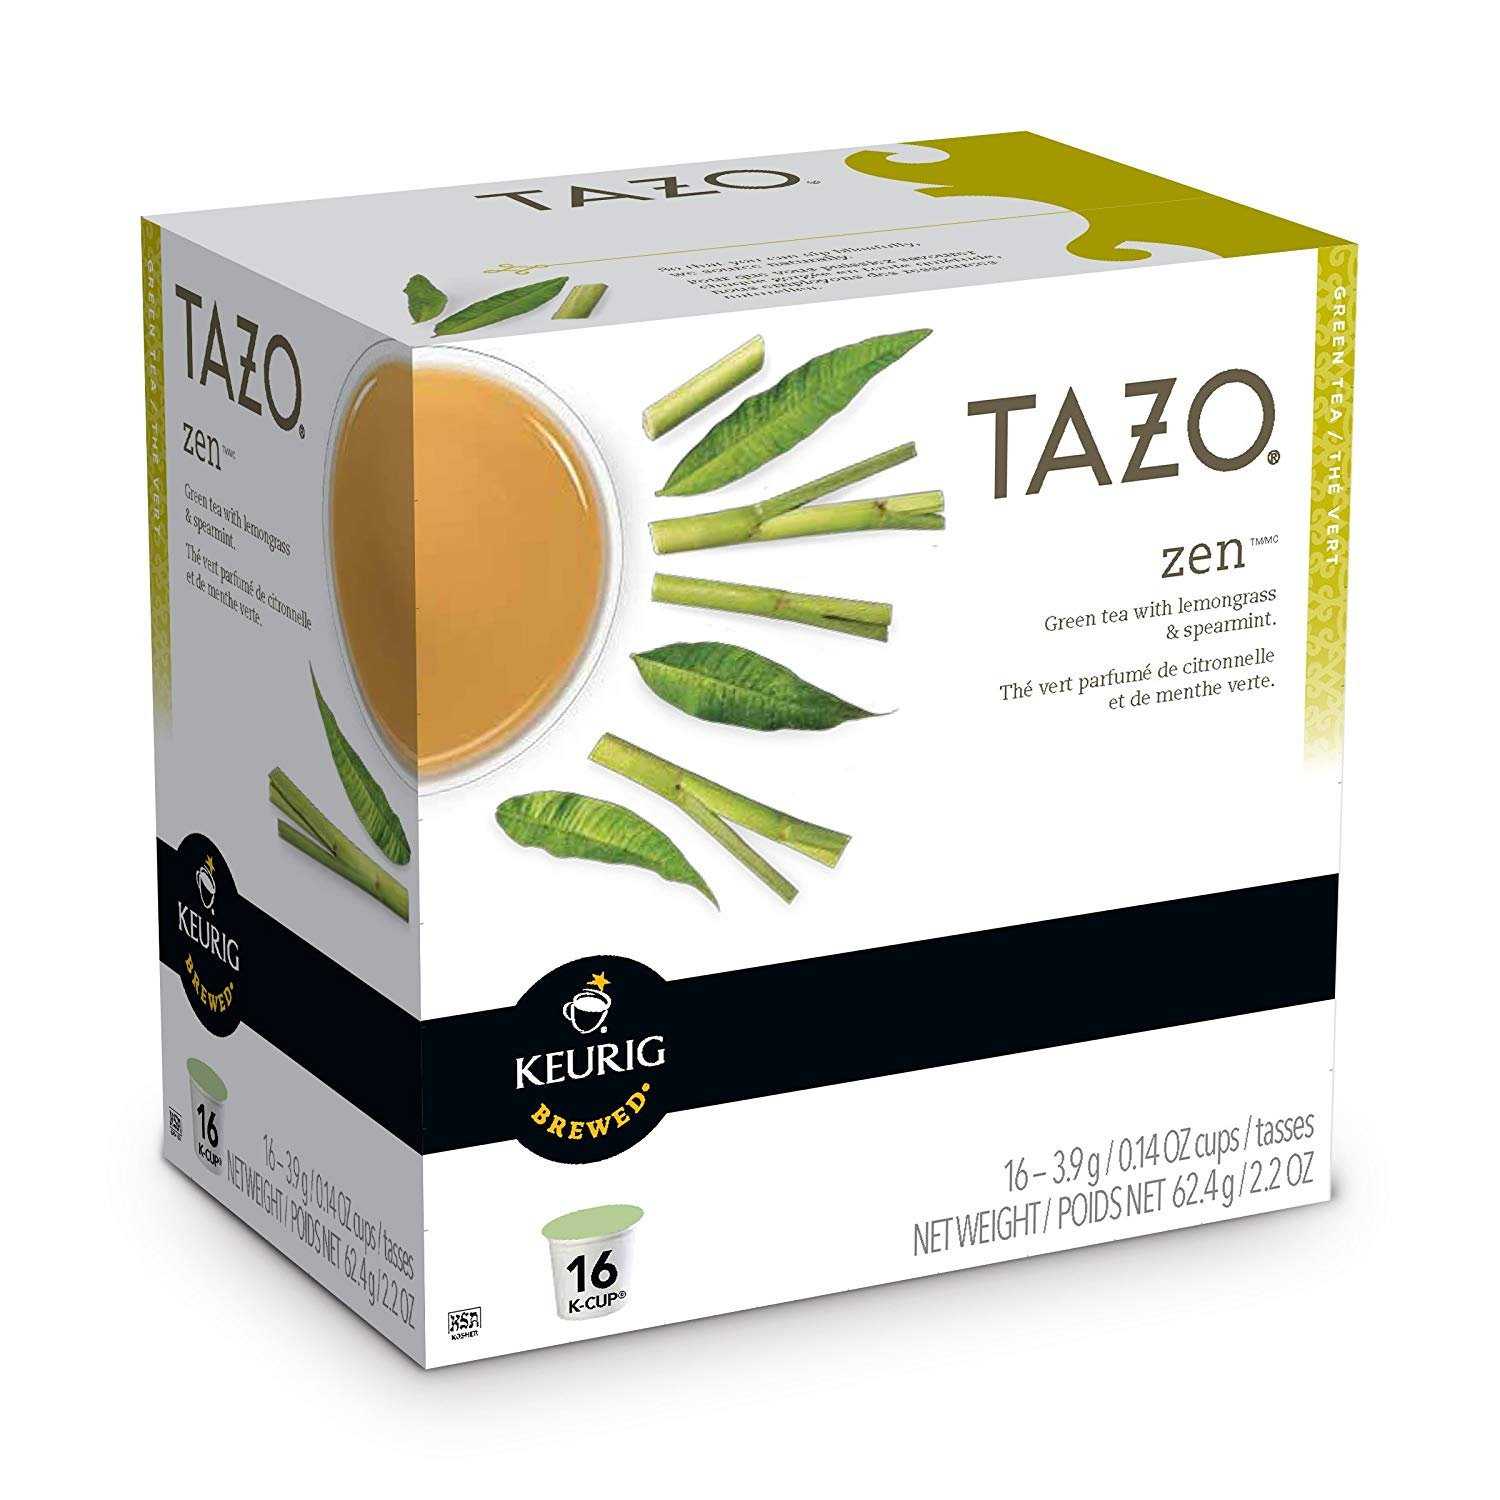 Tazo Zen Green Tea Keurig K-Cups 64 Count (4) by Starbucks